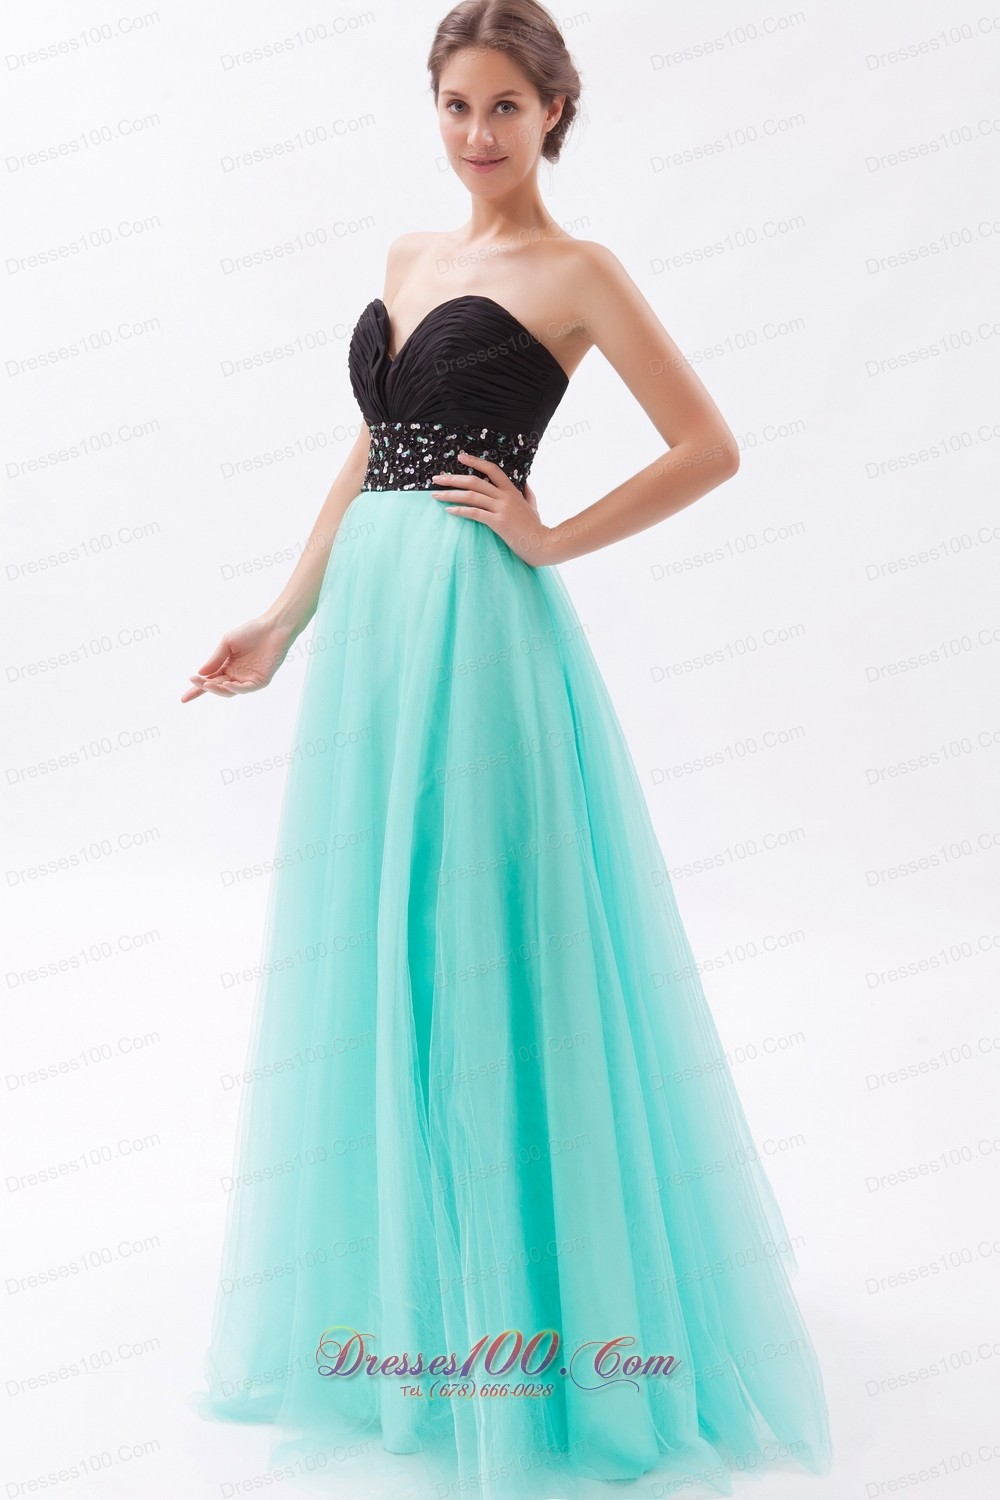 Pretty Prom Maxi Dress Sweetheart Crystal |Discount Prom Dresses